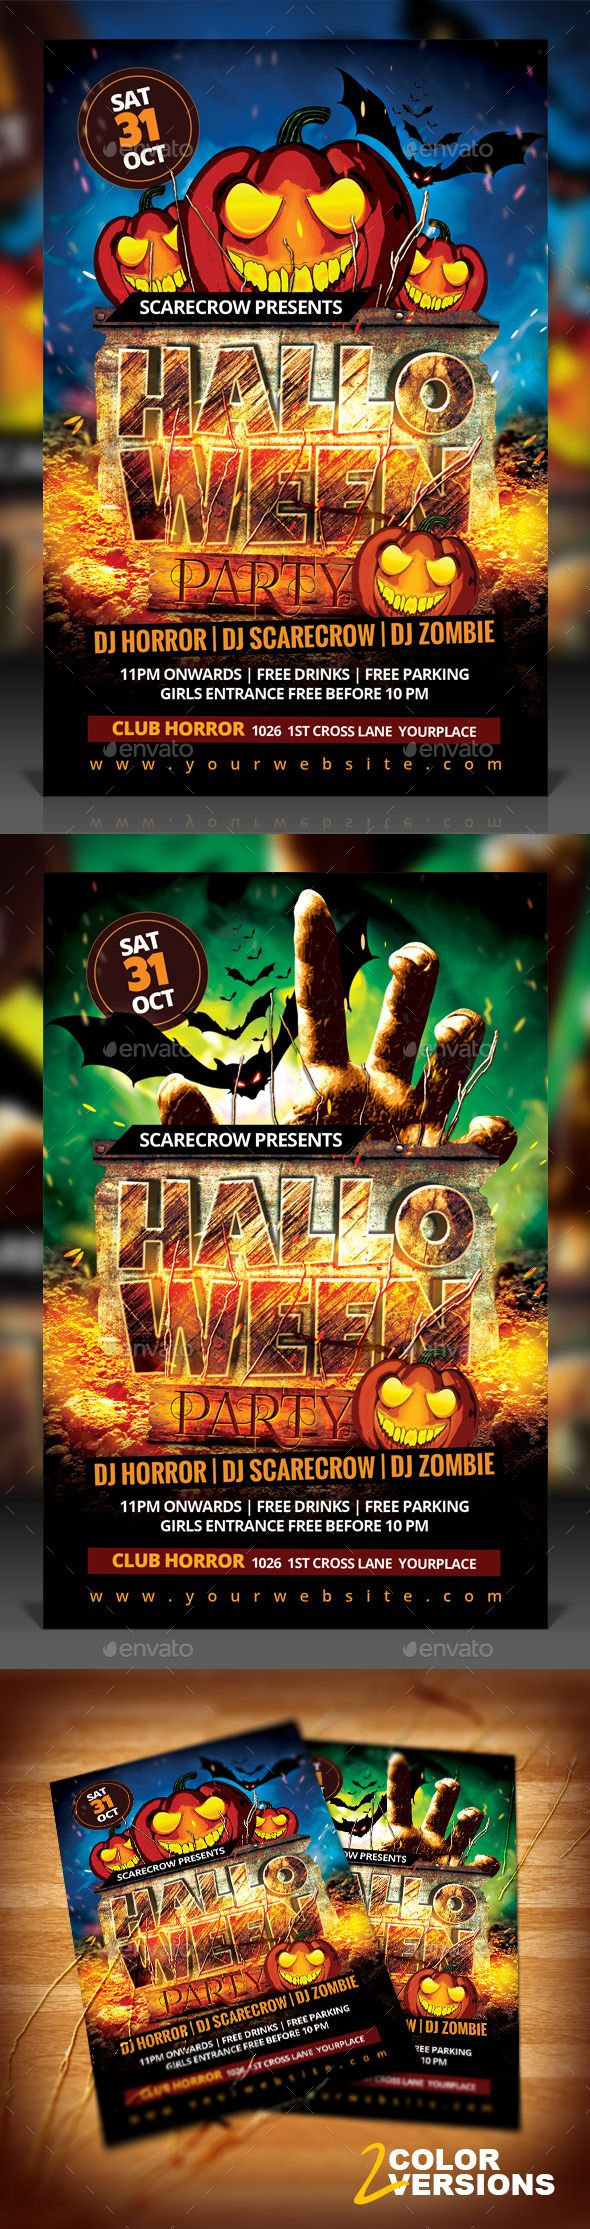 Halloween Party Flyer | Halloween party flyer, Party flyer and Flyer ...